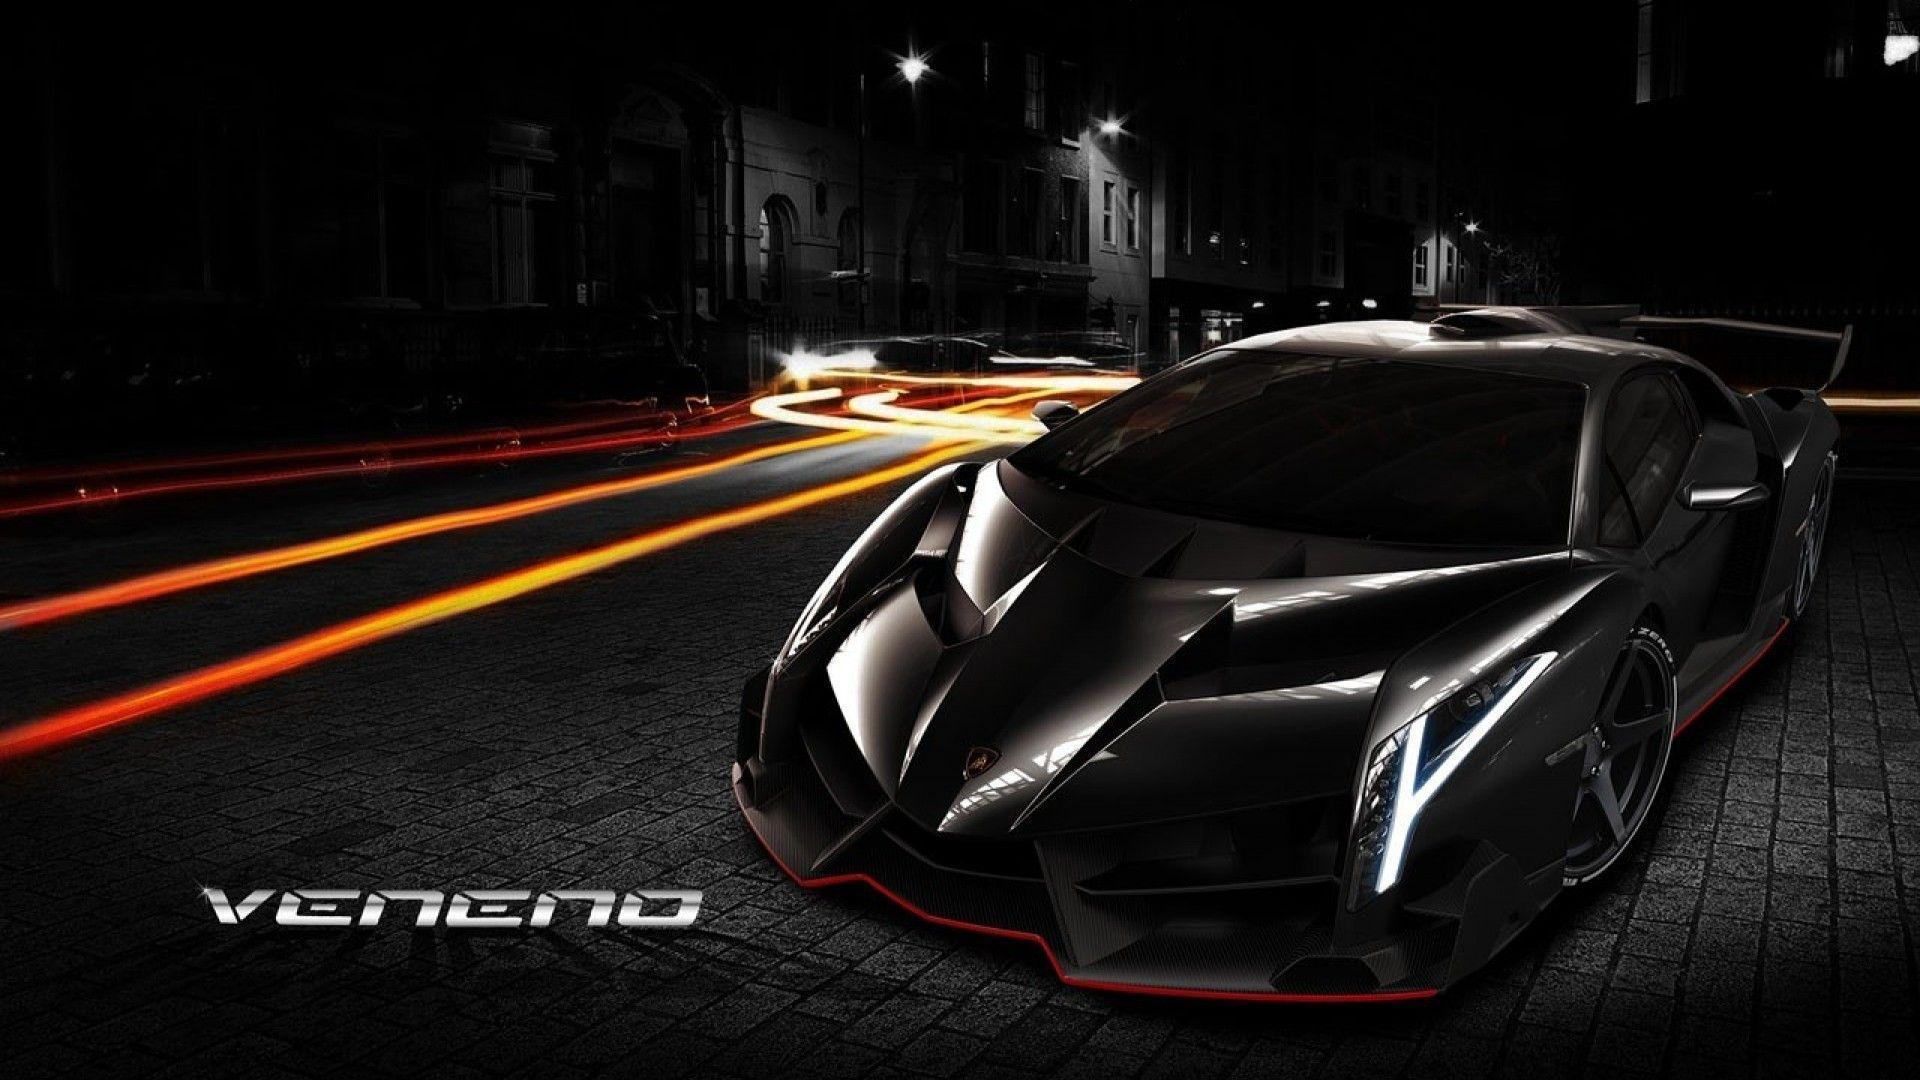 Lamborghini Veneno 2017 Wallpapers Wallpaper Cave